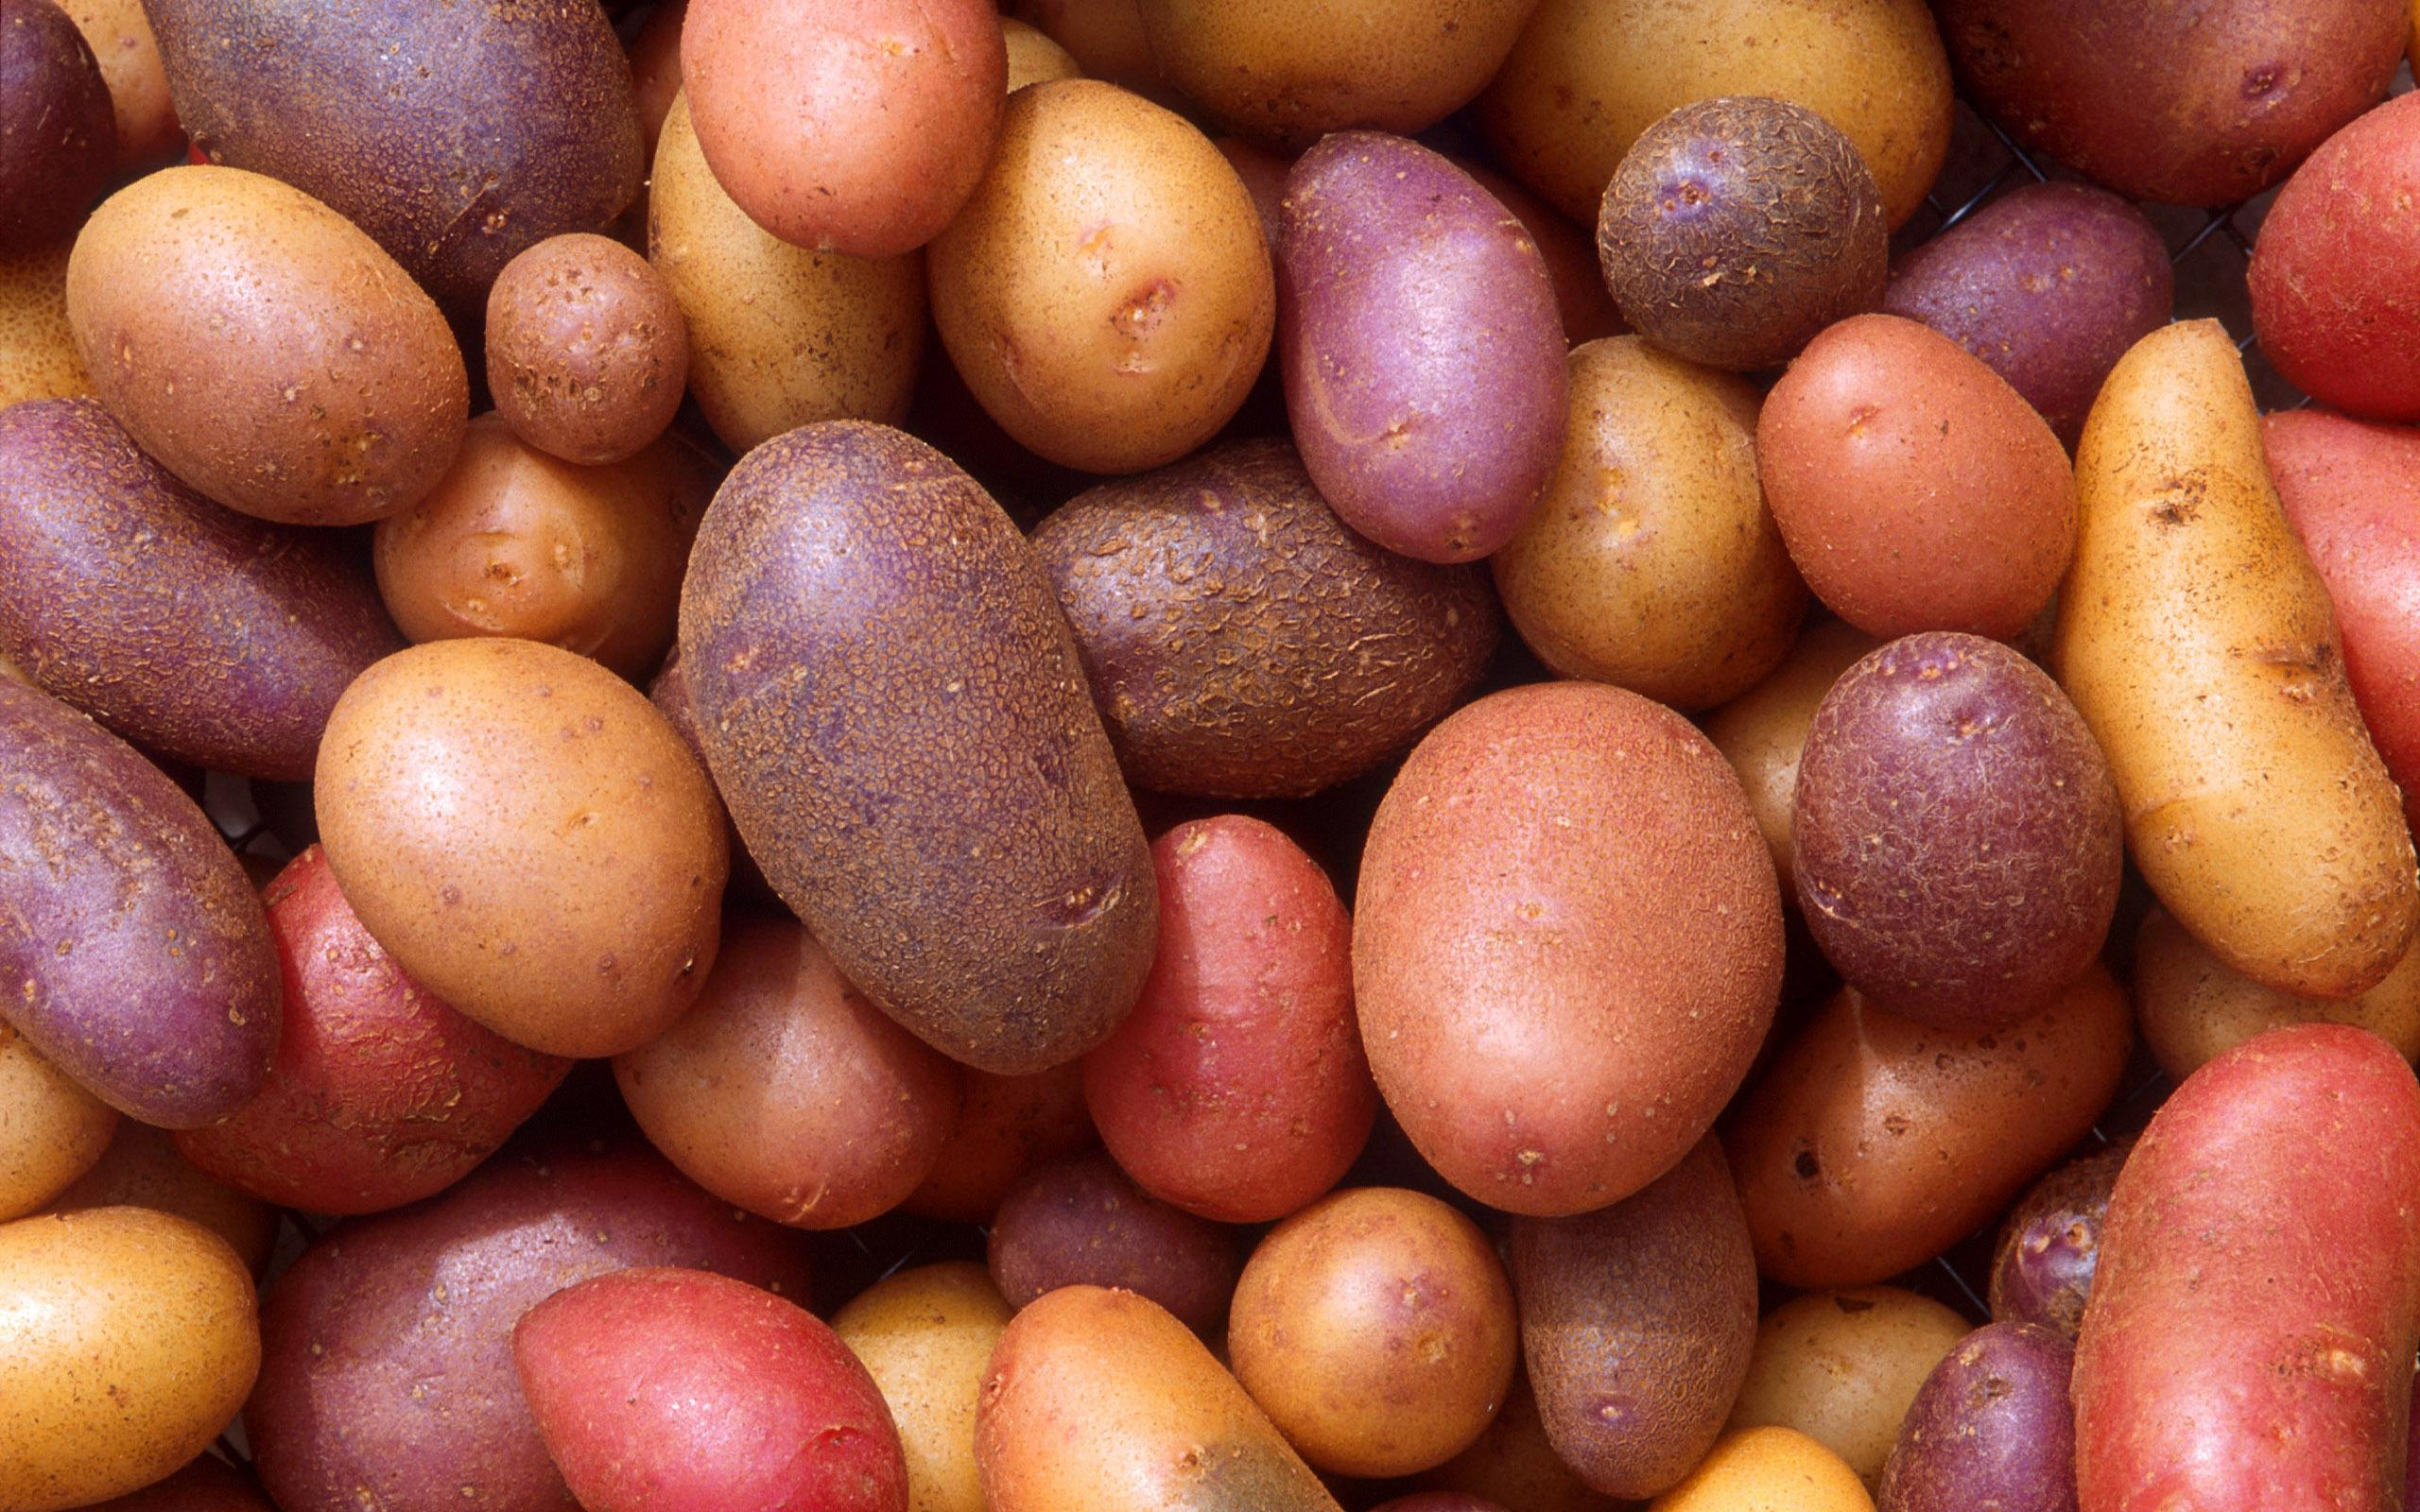 colorful potatoes food wallpaper background 63194